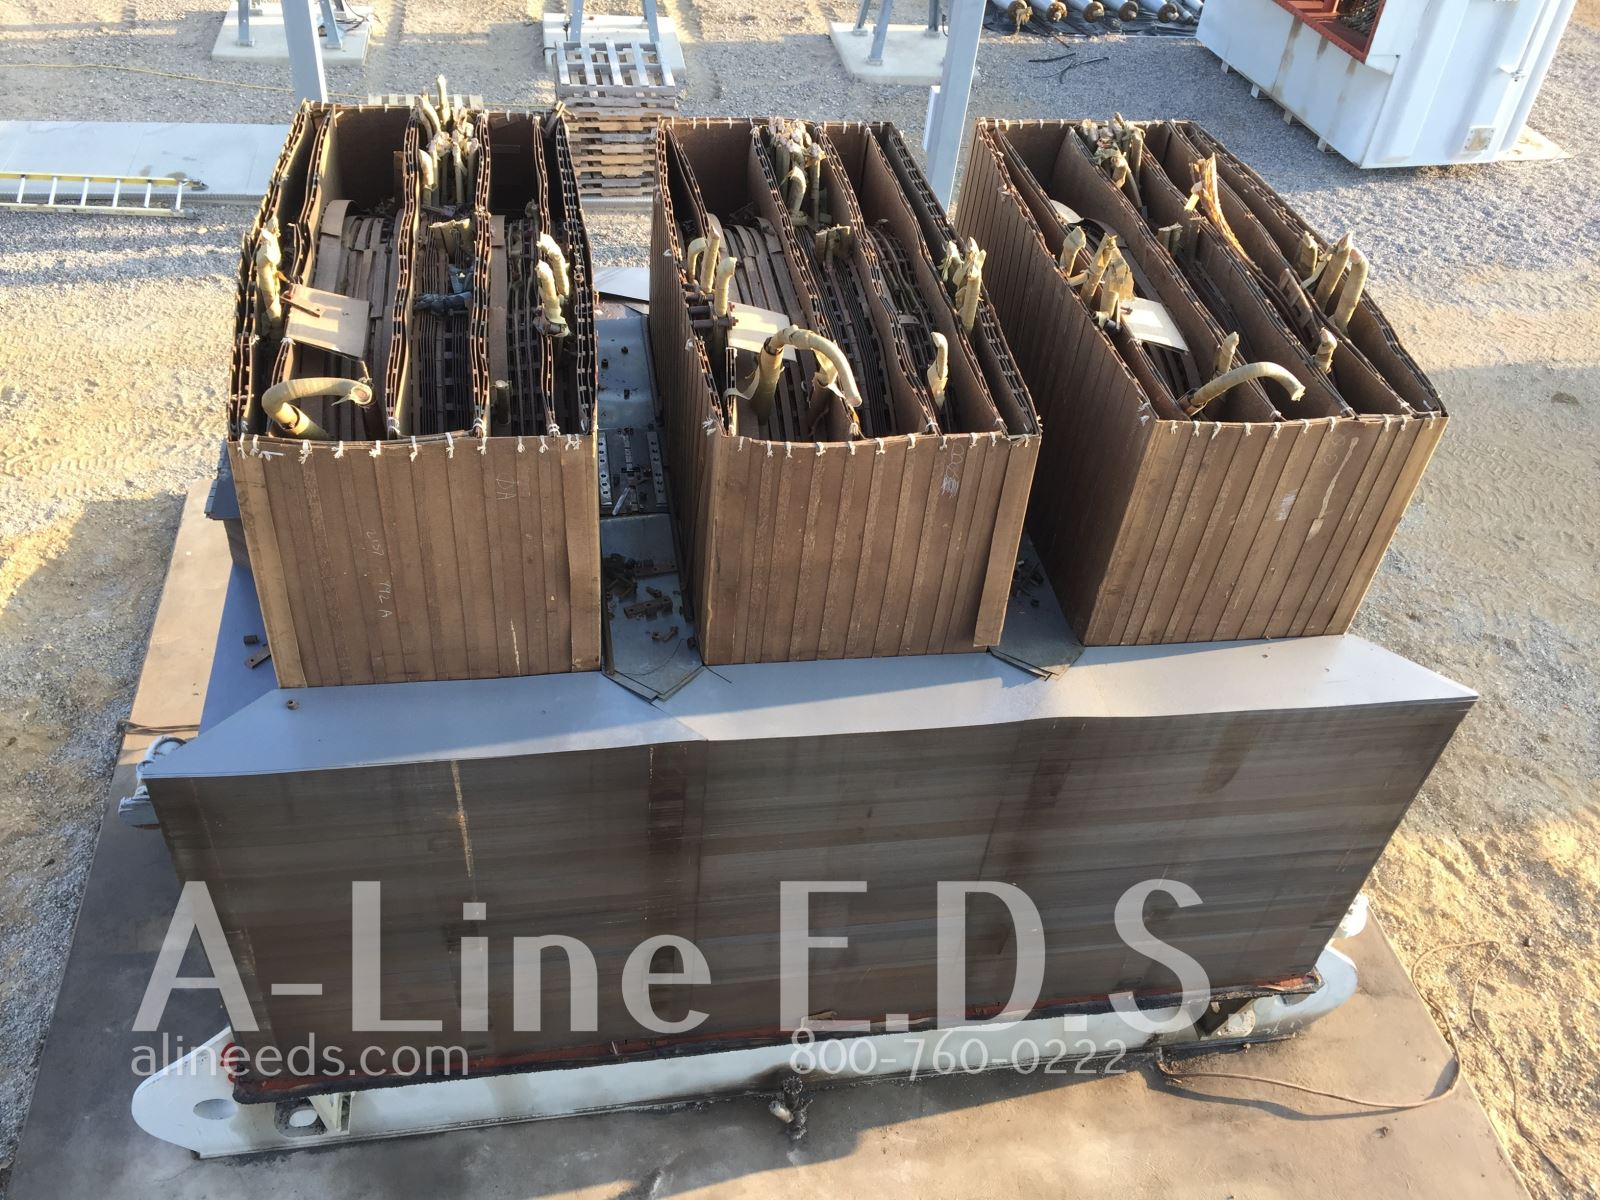 Power Transformer Recycling- What Makes A-Line E.D.S. the Best